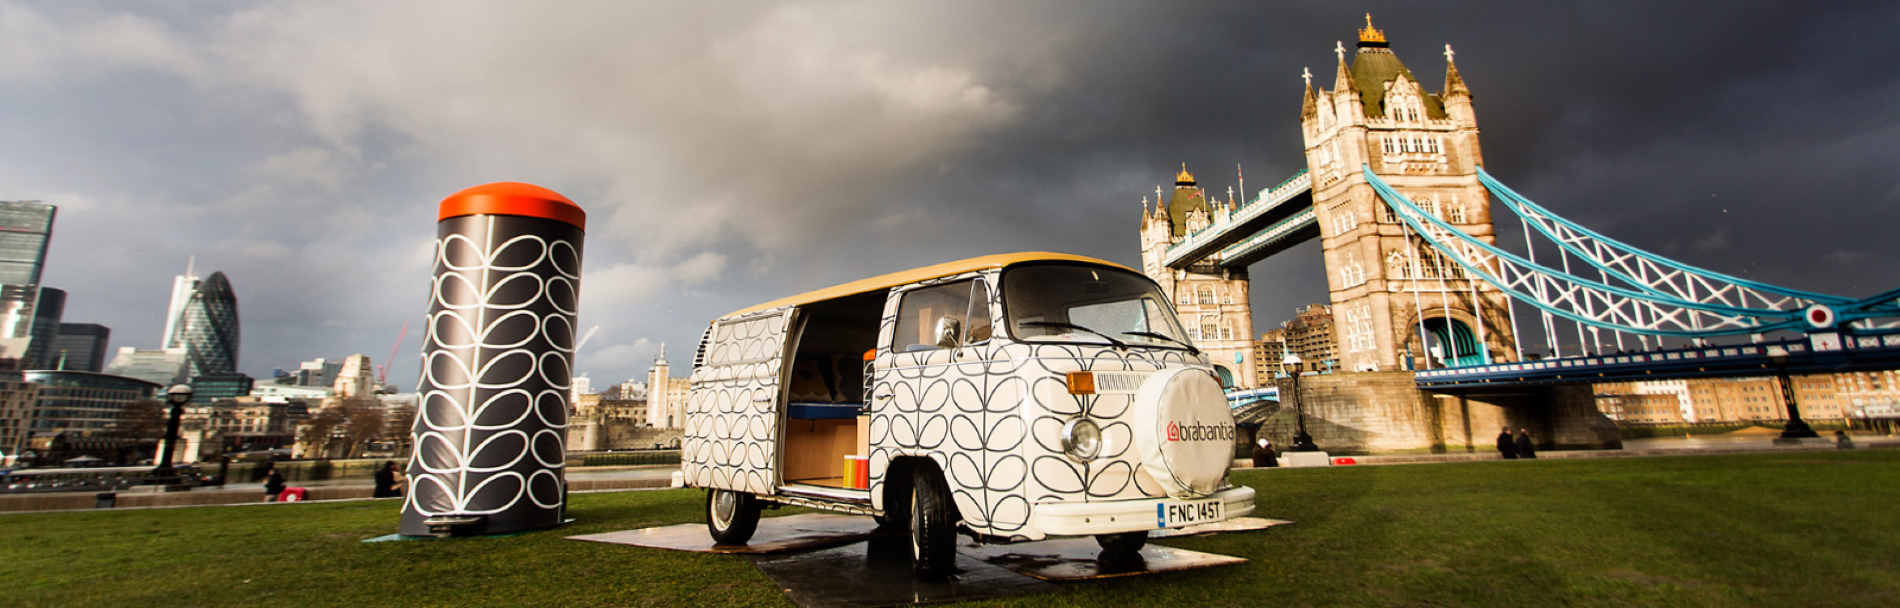 Branded campervan hire for promo events London